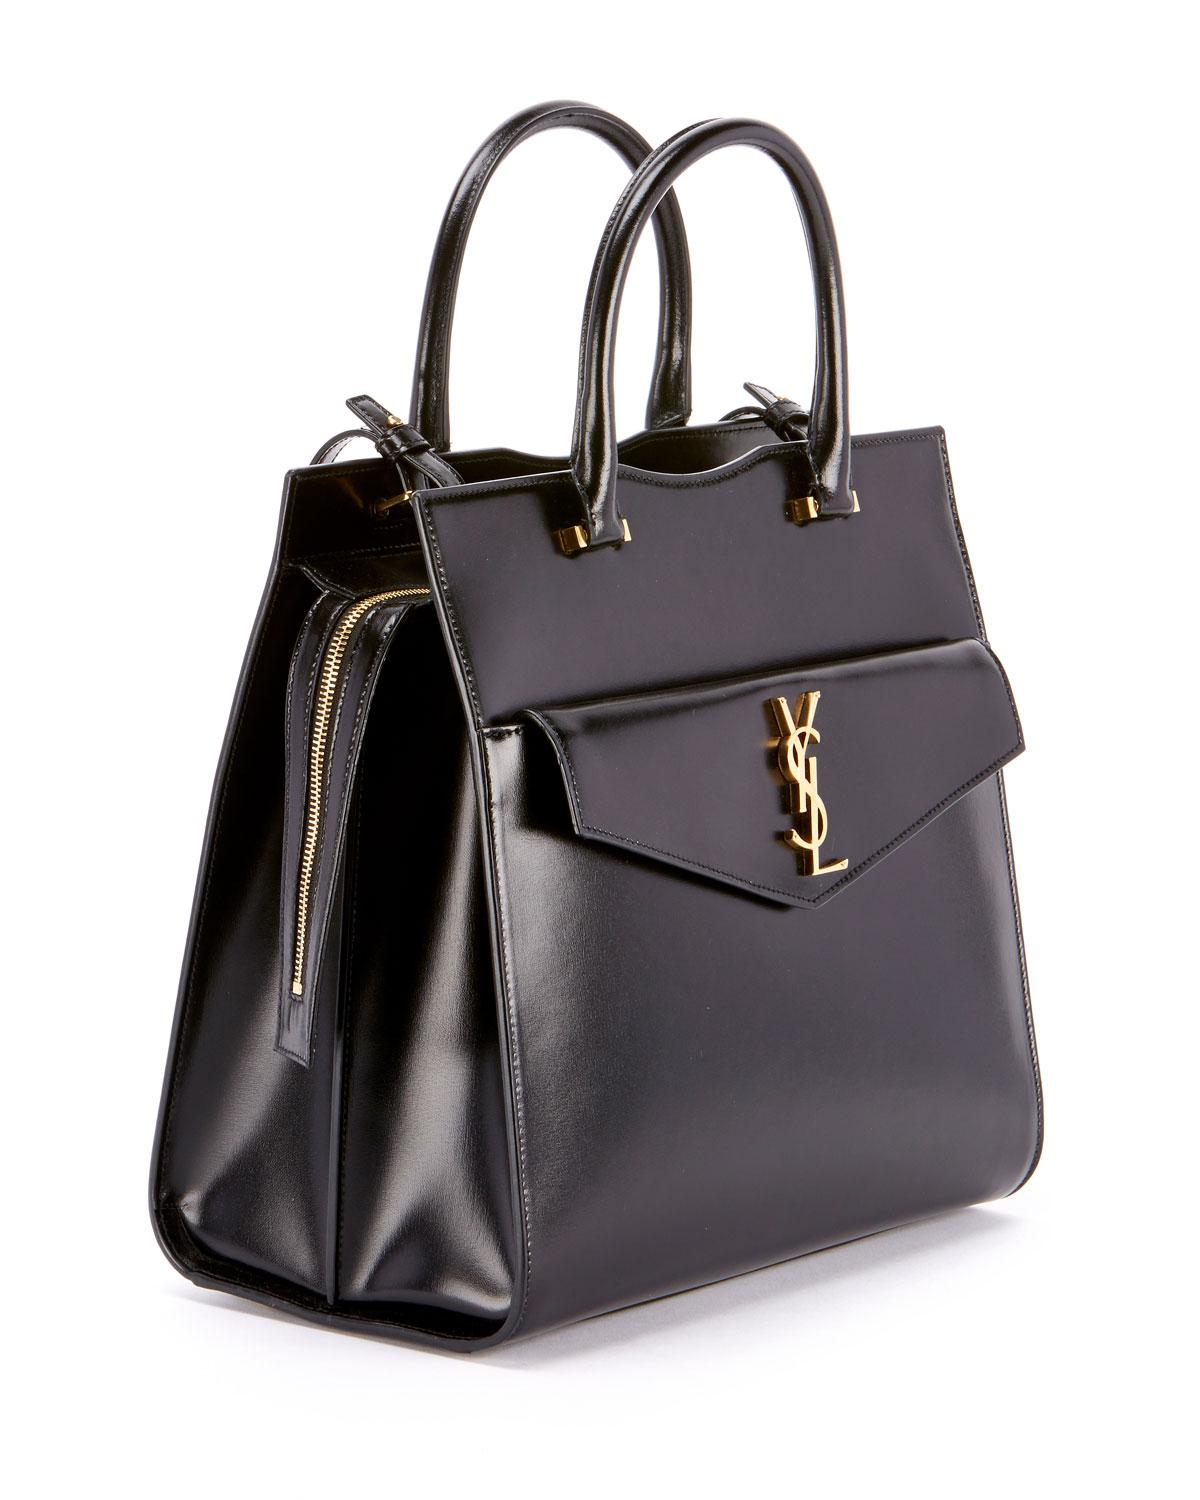 de339049e6c4 Lyst - Saint Laurent Uptown Medium Monogram Ysl Cabas Cuir Glace Satchel Bag  in Black